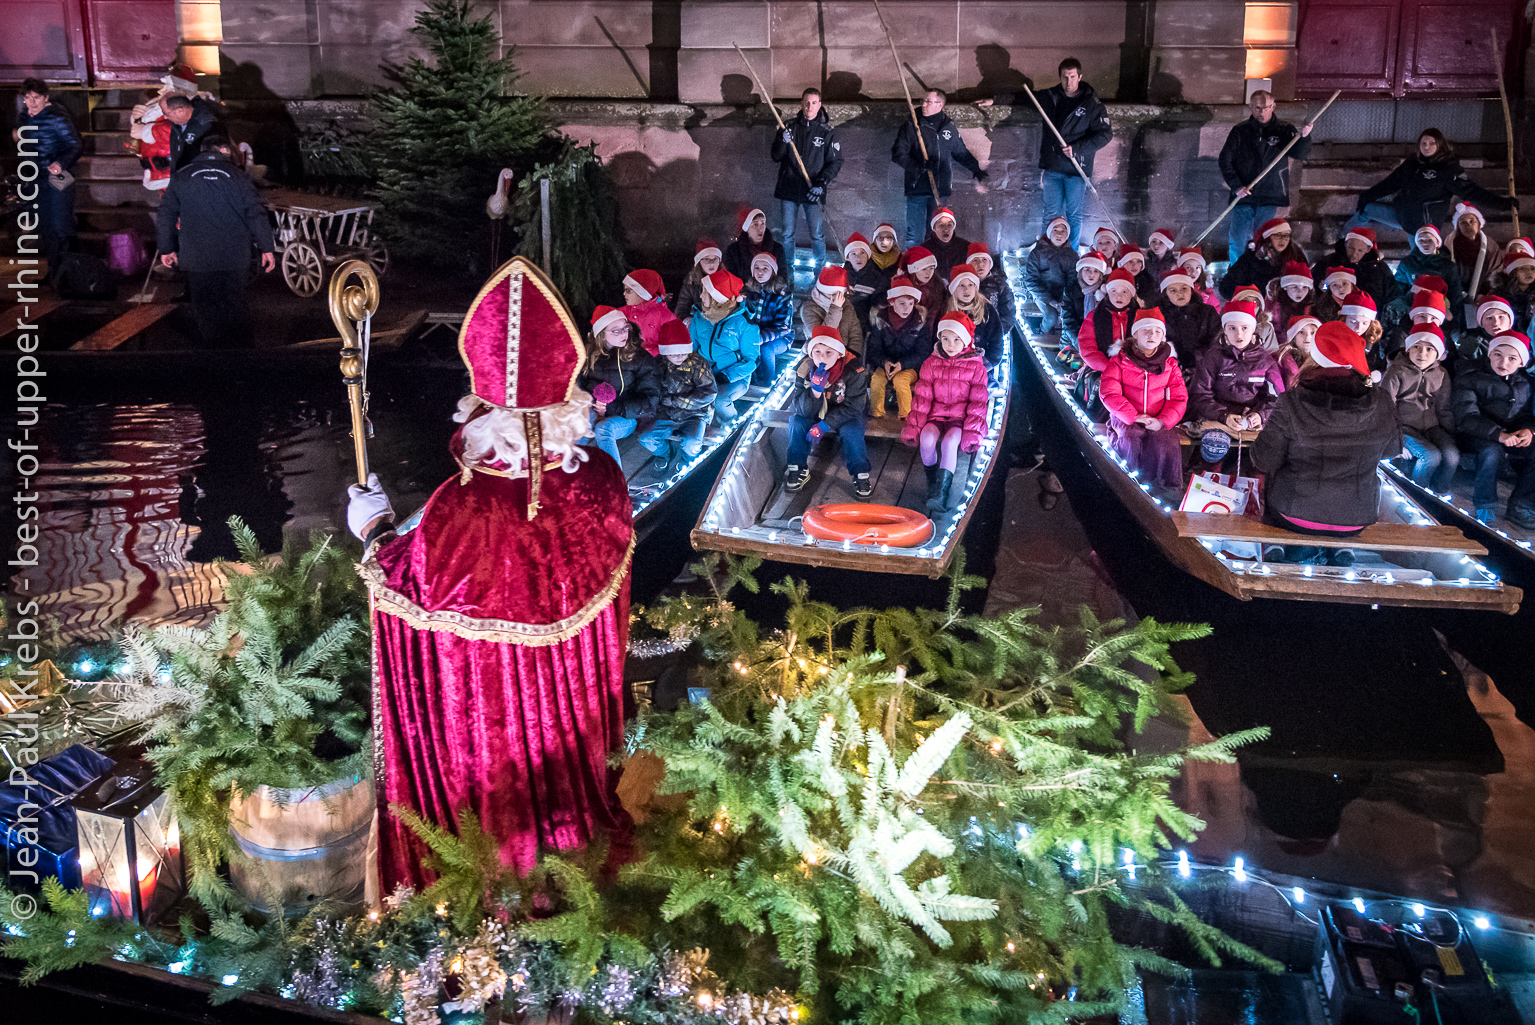 Saint Nicholas is arriving with a small boat and cheered by singing children.